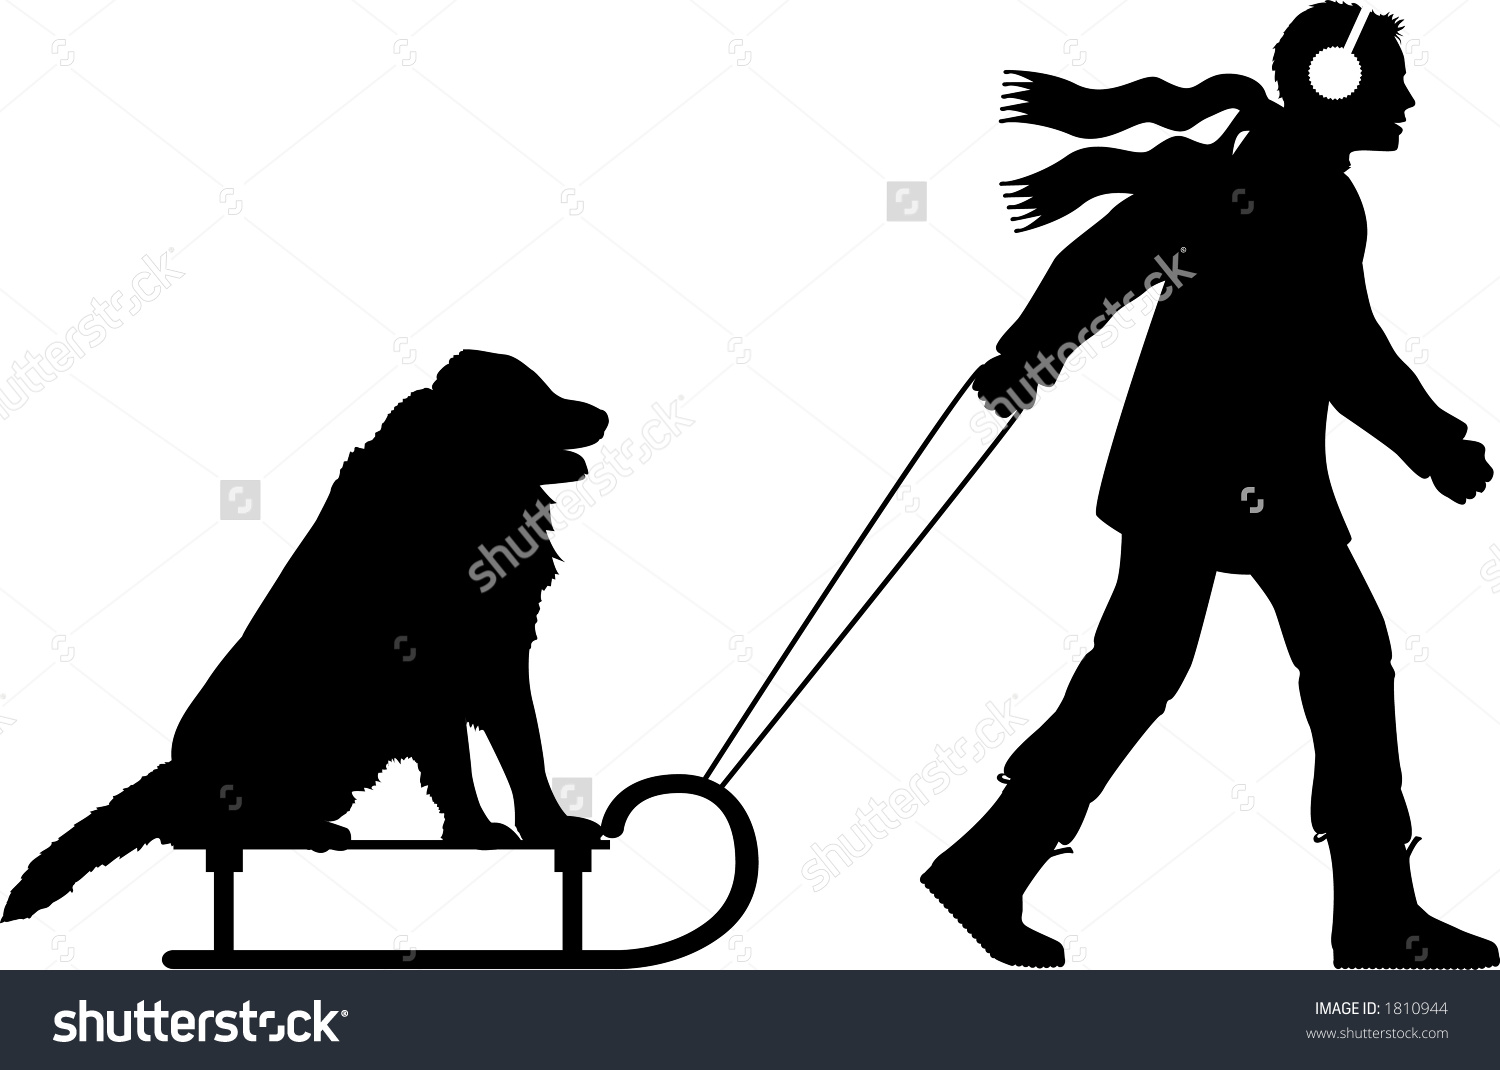 Vector Silhouette Graphic Depicting Man Pulling Stock Vector.